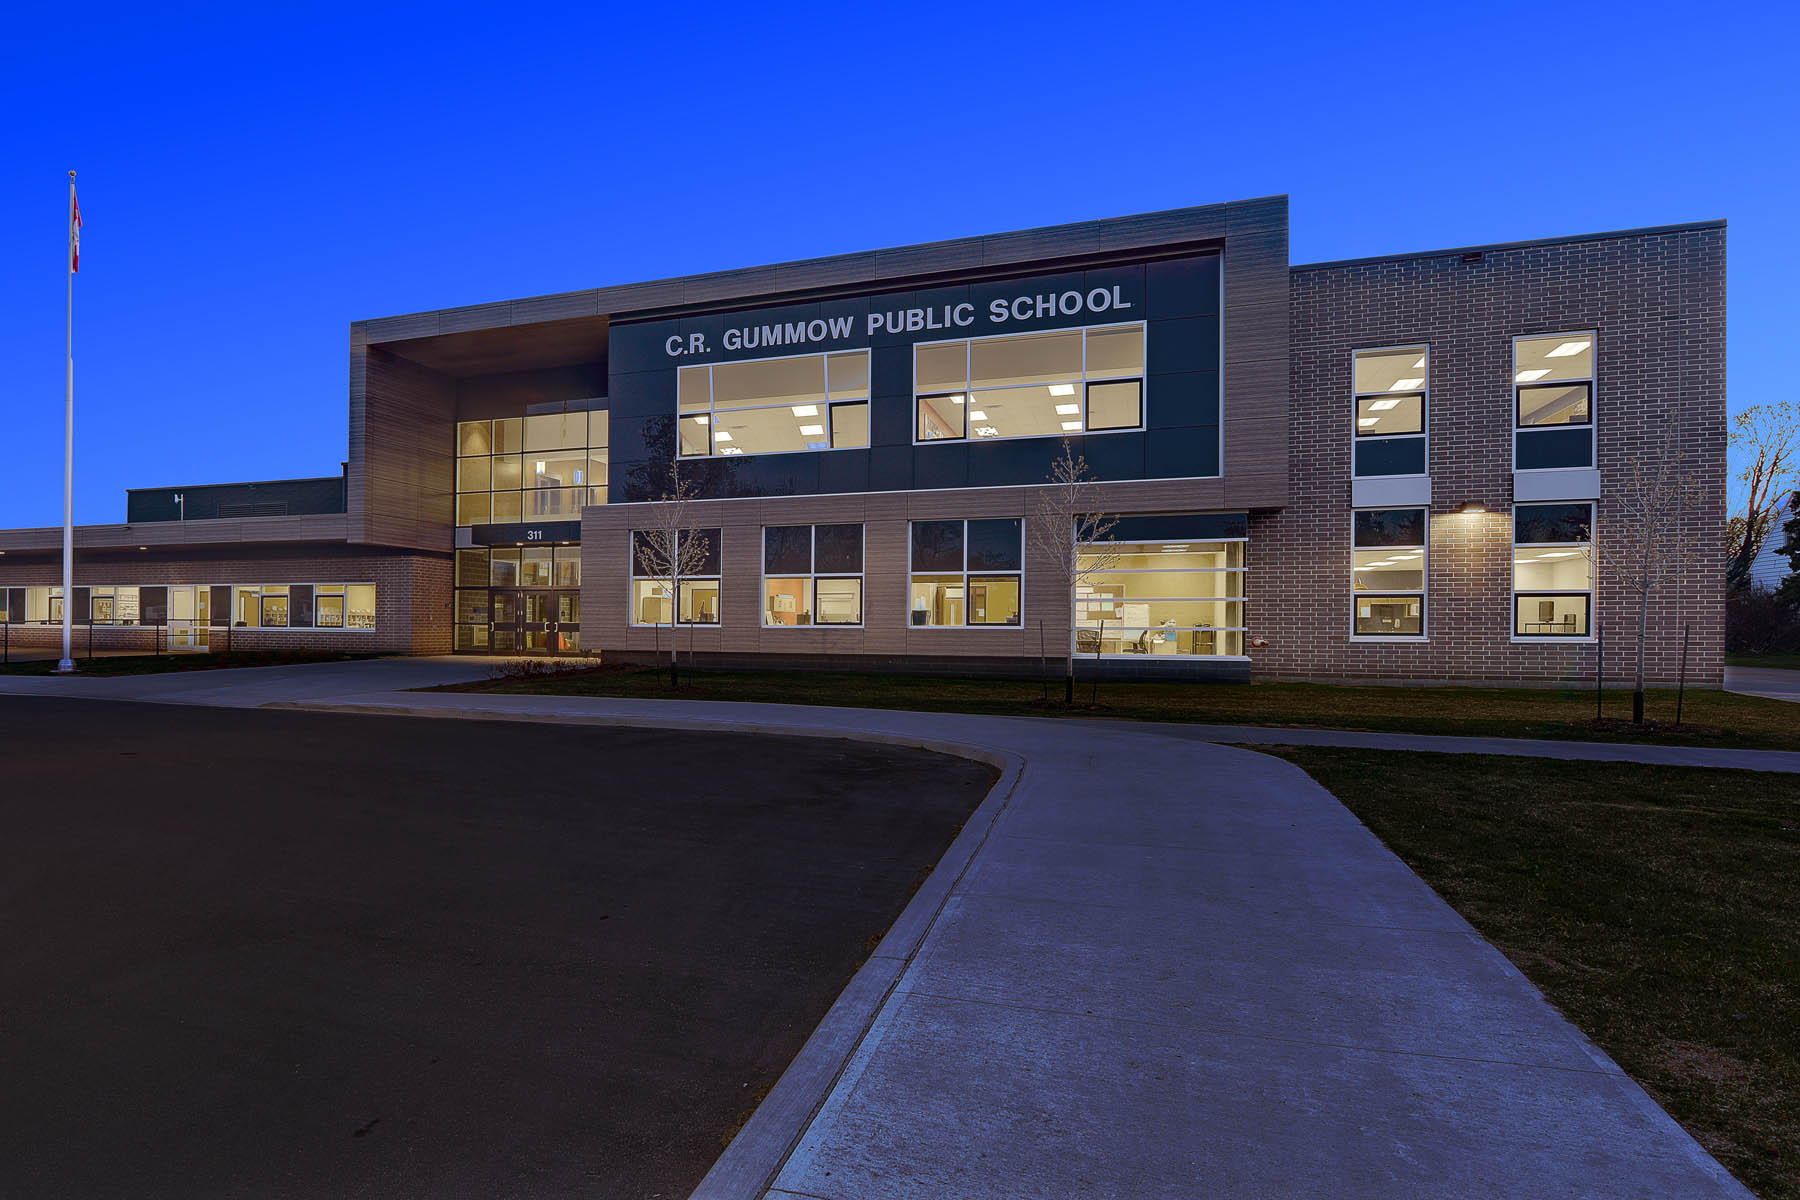 Illuminated view of front facade of school from entrance walkway at dusk